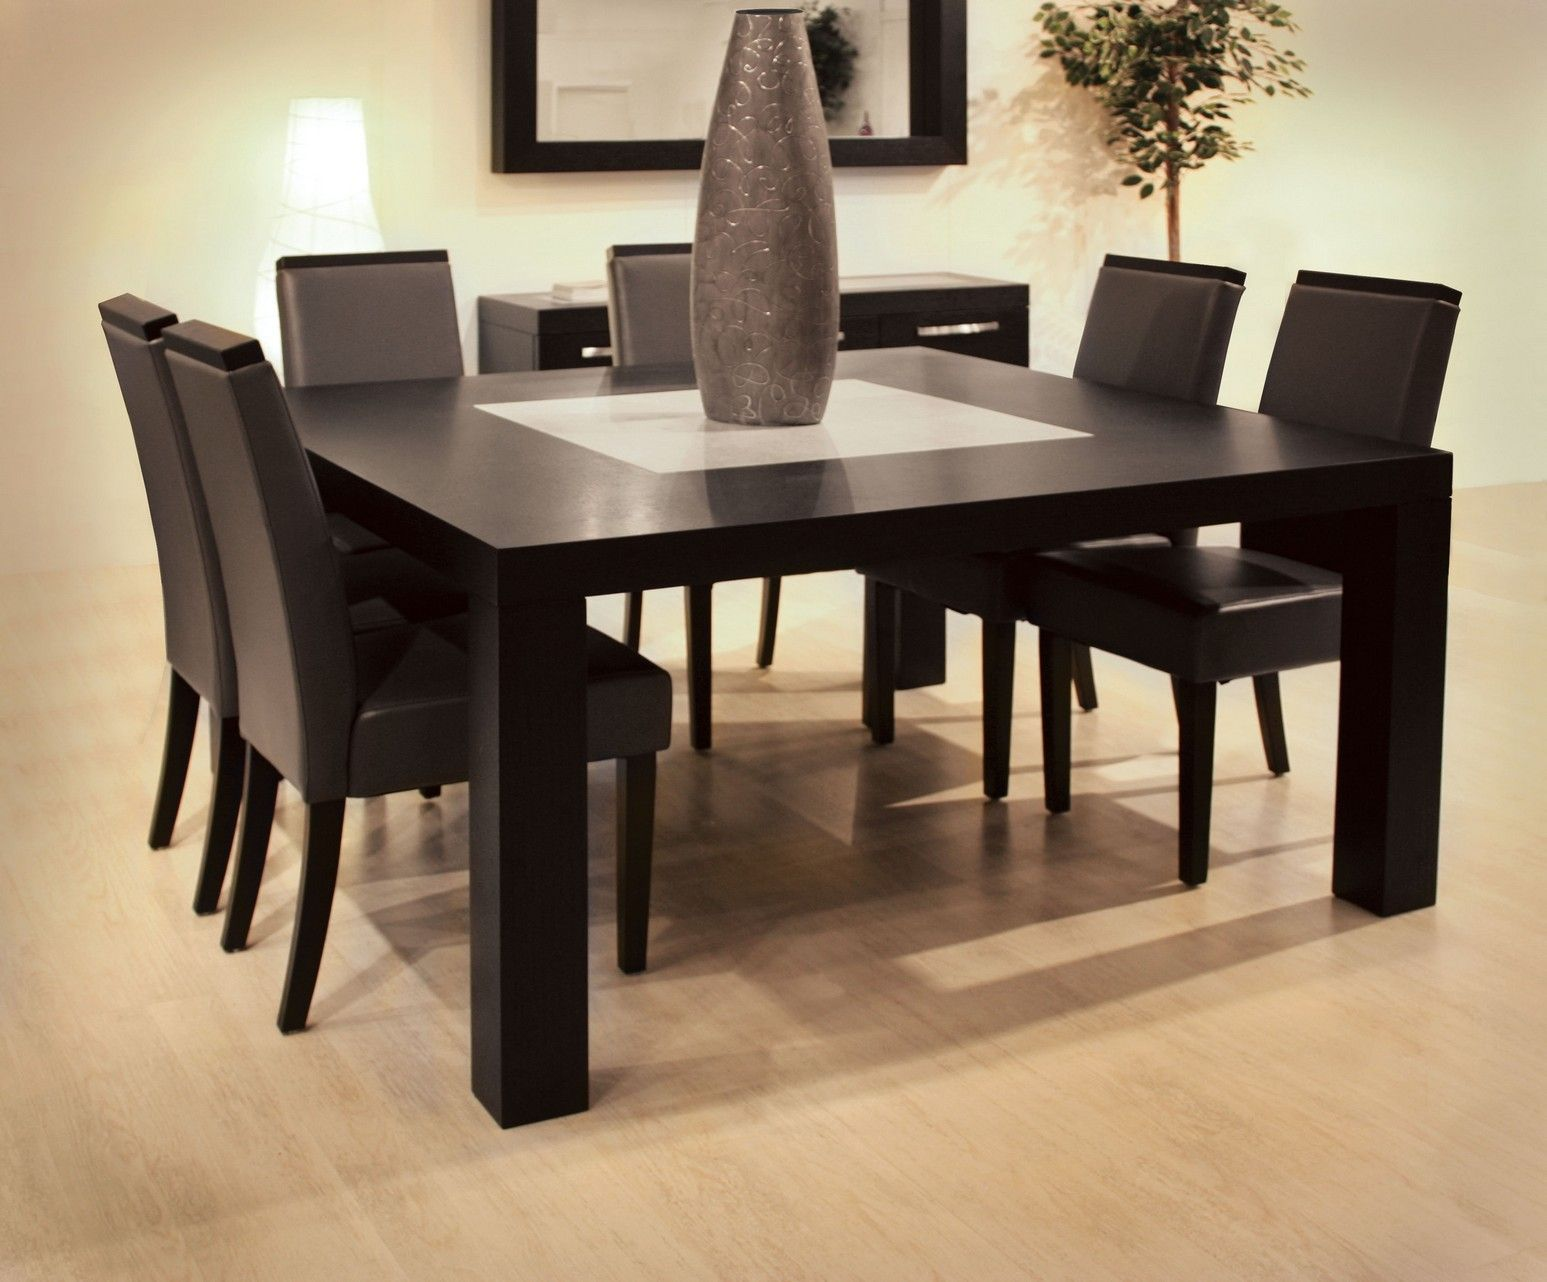 small square kitchen table The square dining table is a popular dining table as it doesn t take up too much space and provides ample leg room for everybody who are seated